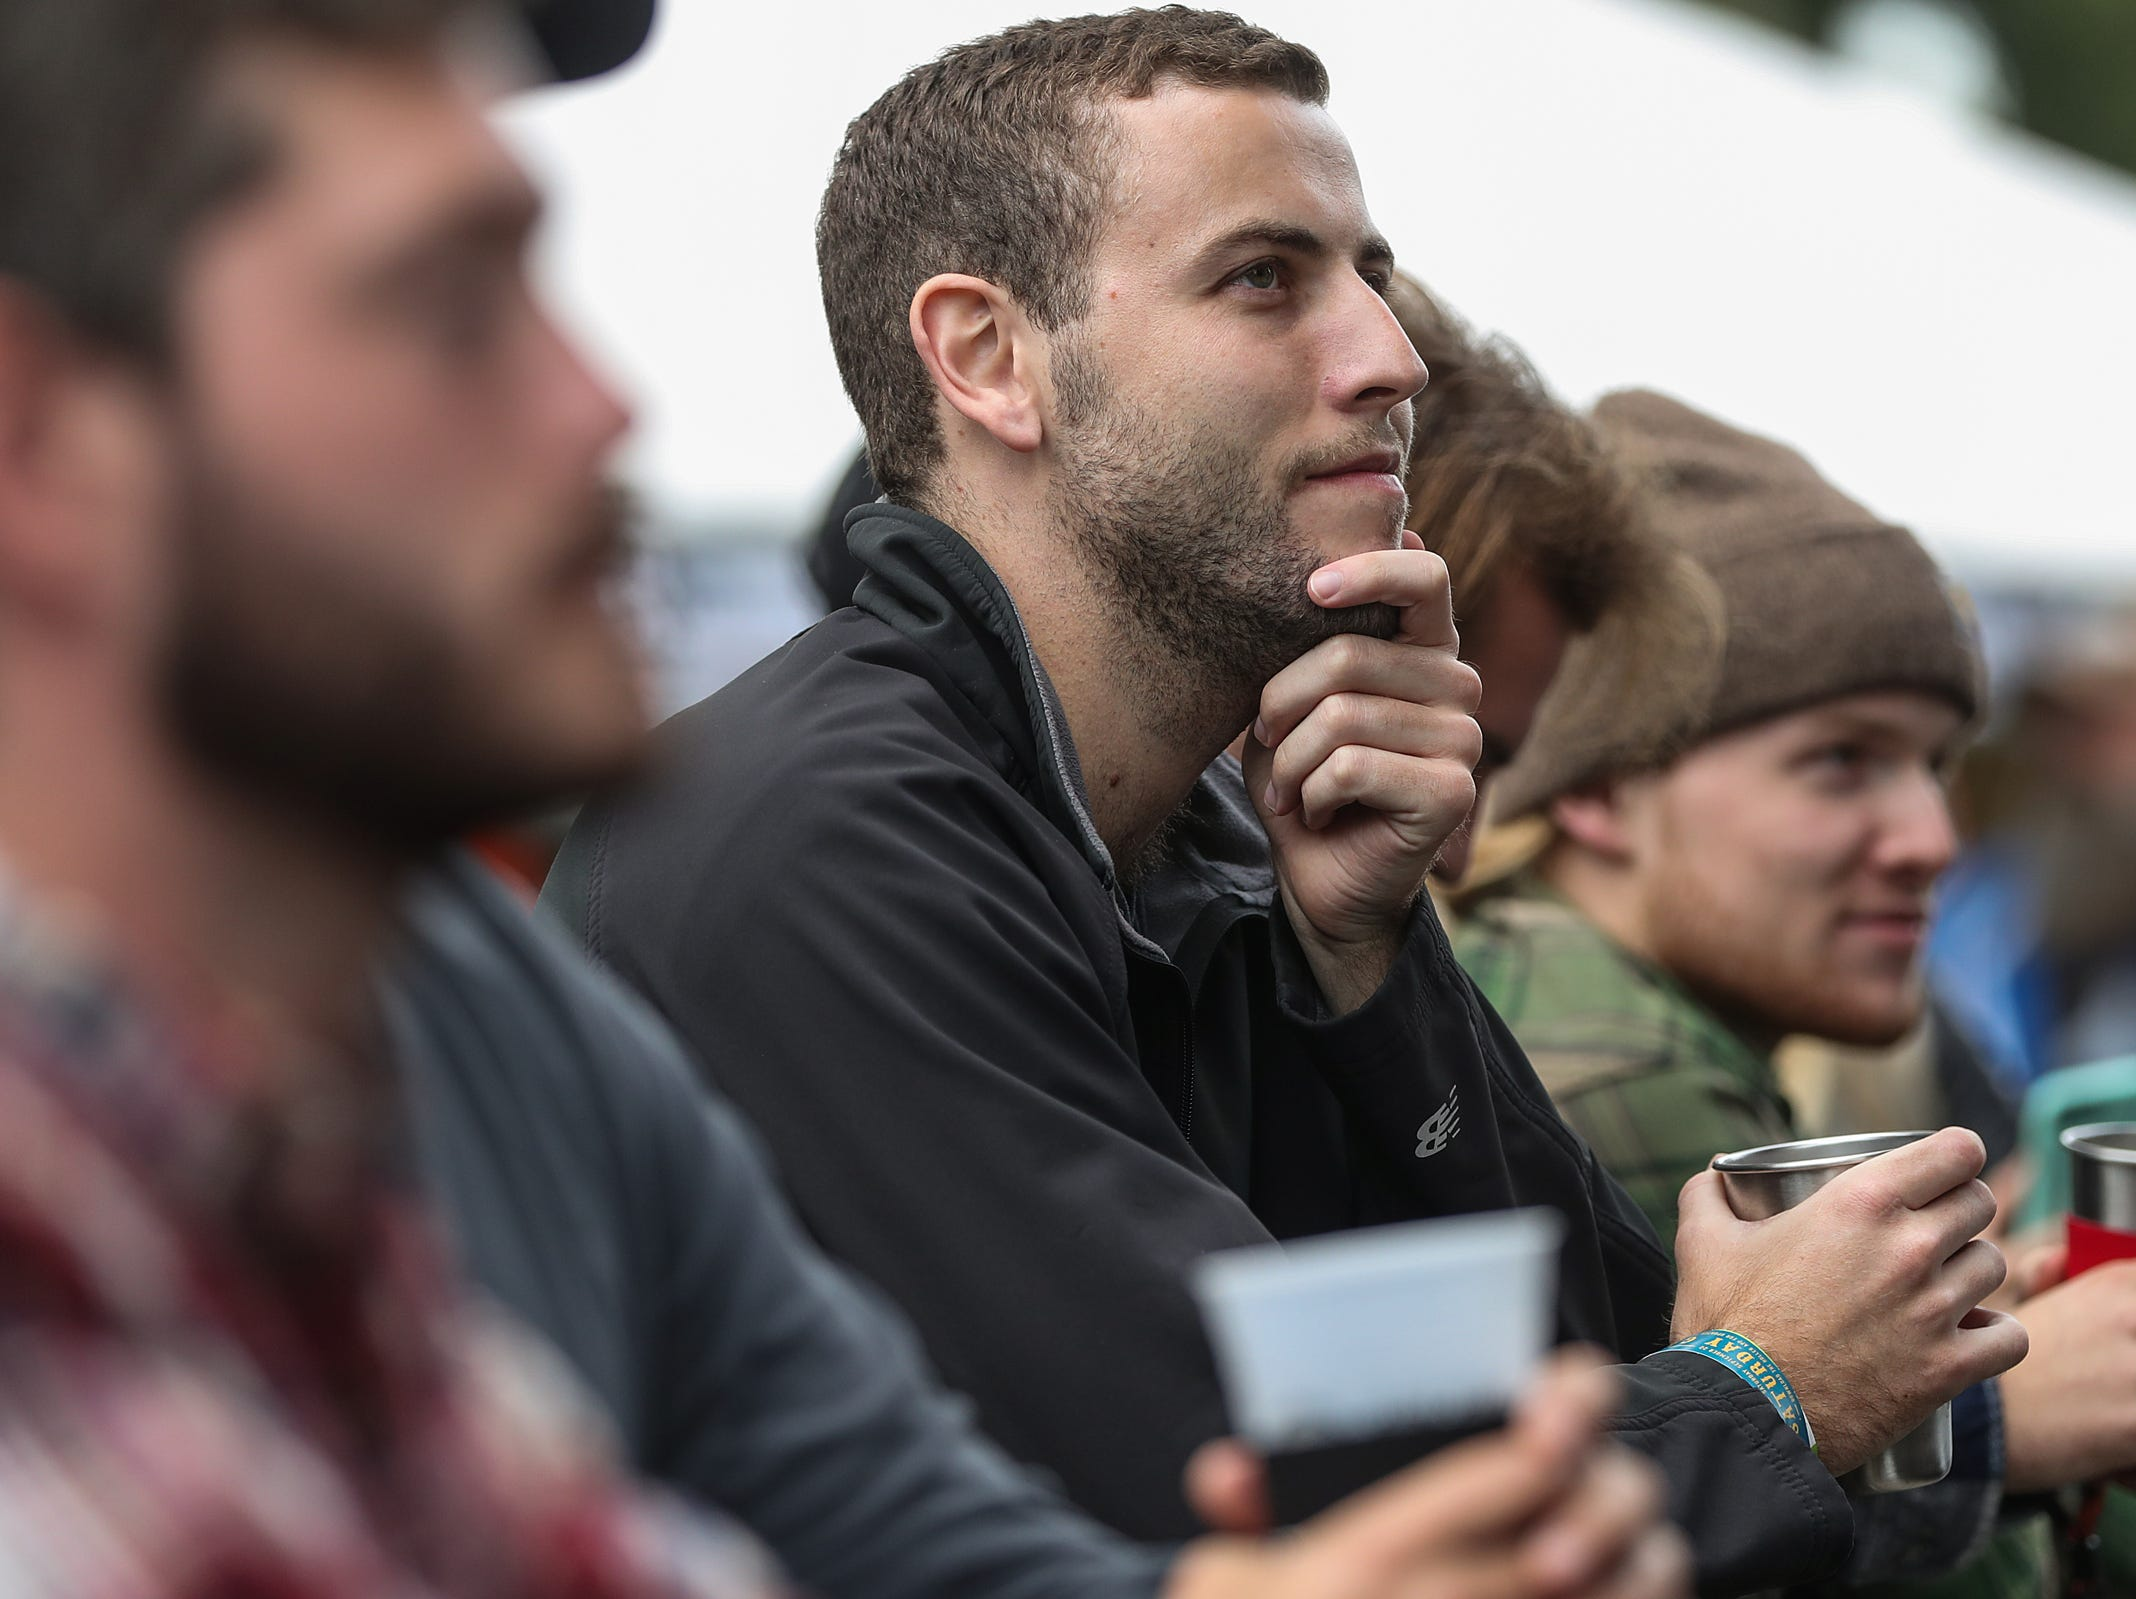 Spectators listen to Ohio-based folk group Caamp at the inaugural Holler on the Hill music festival at Garfield Park in Indianapolis, Saturday, Sept. 22, 2018.